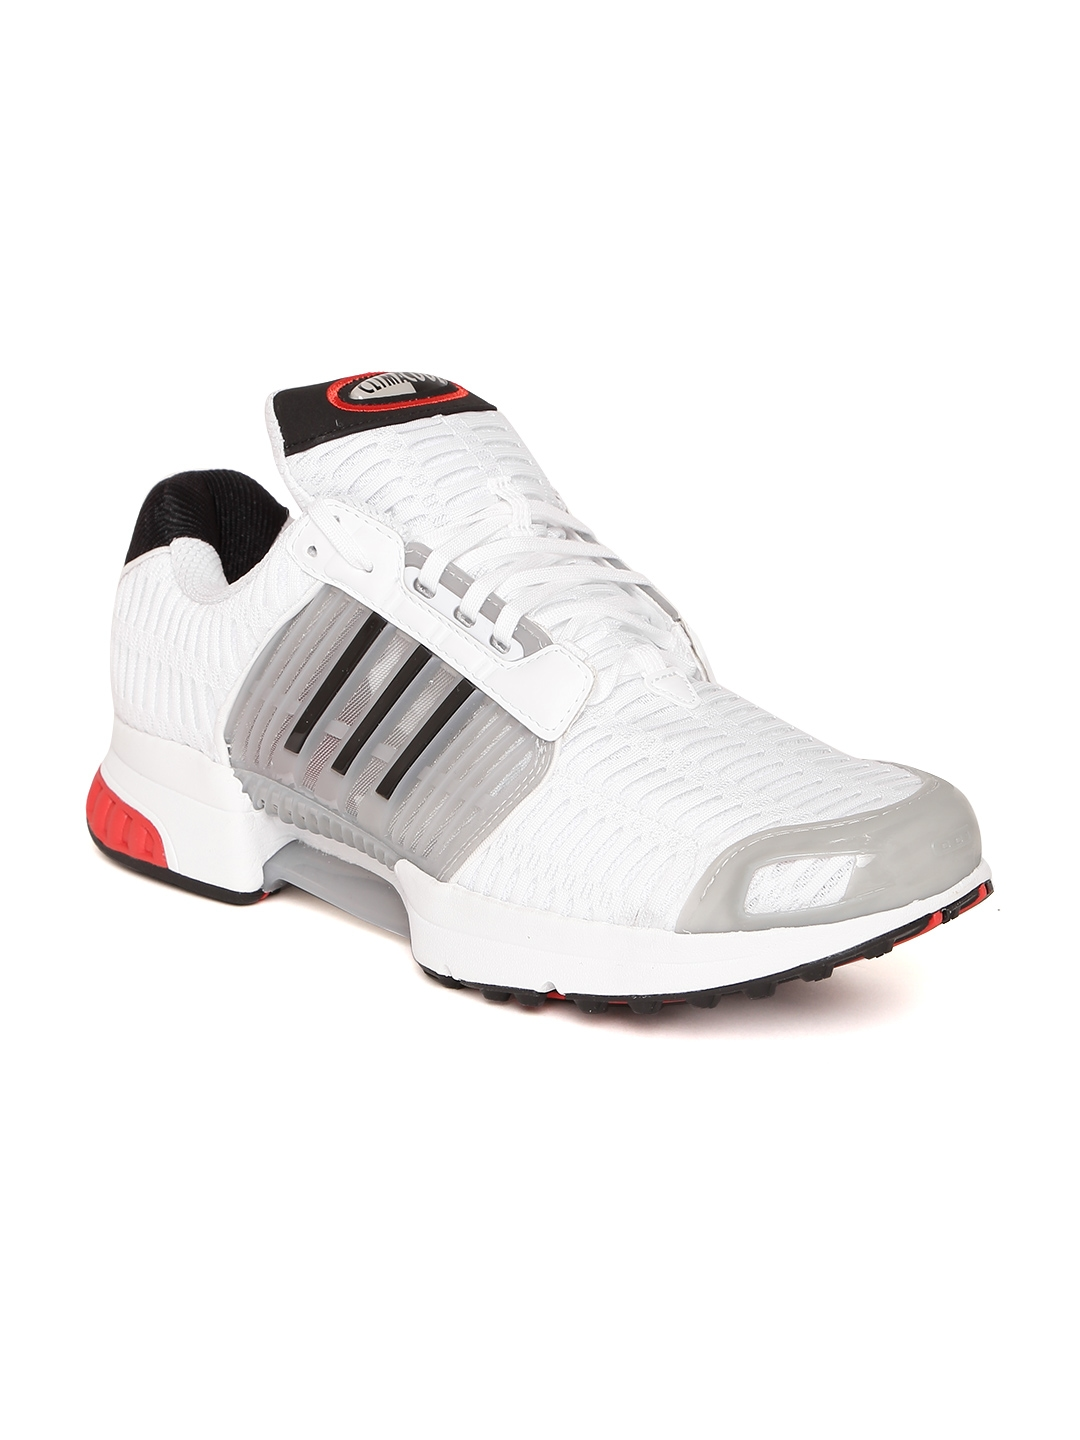 Buy ADIDAS Originals Men White CLIMACOOL 1 Sneakers - Casual Shoes ... a49b827f6